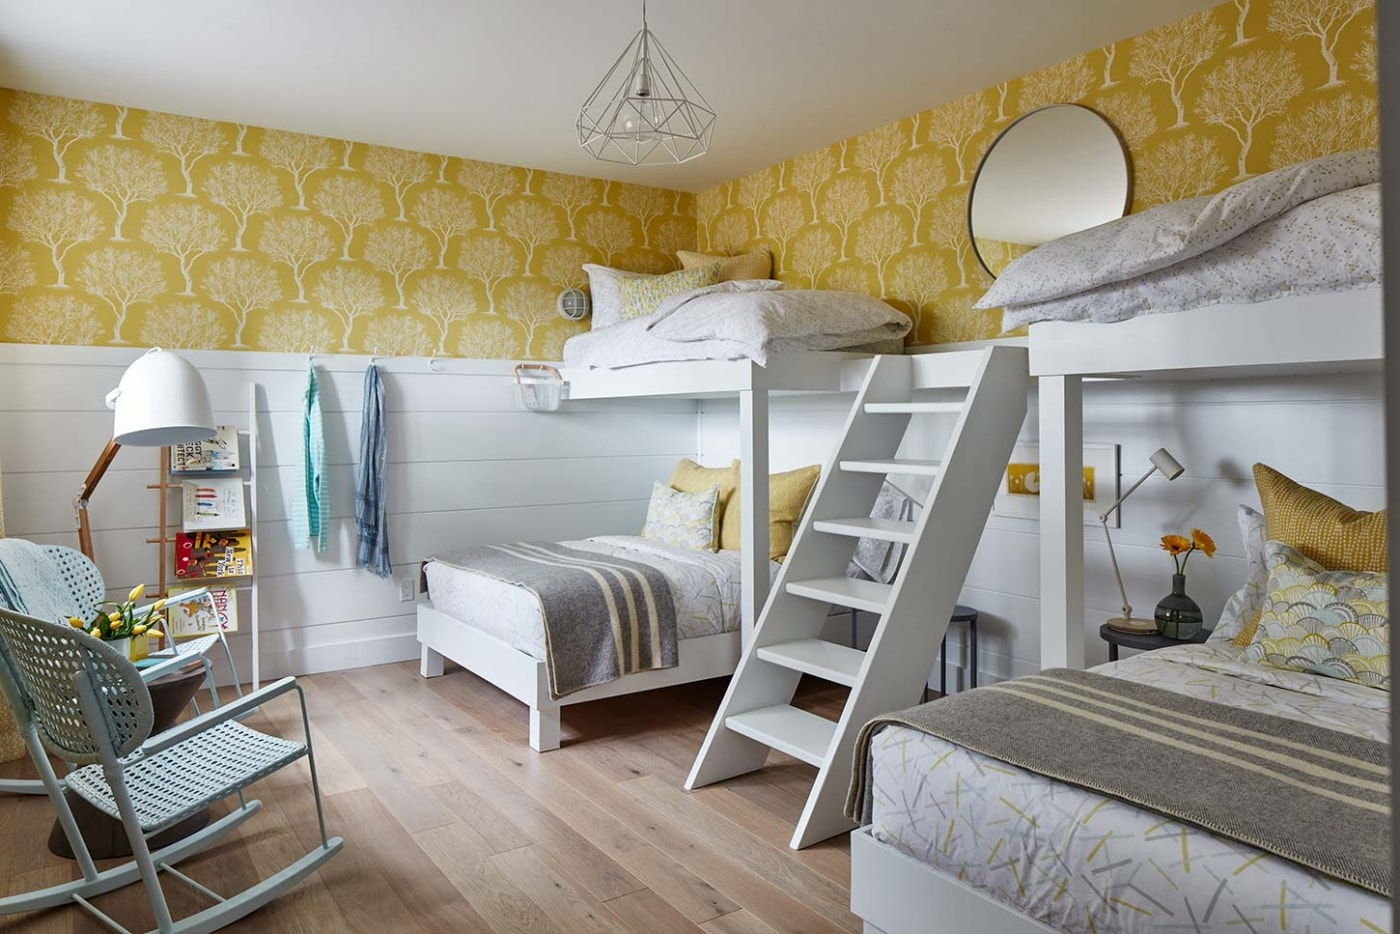 White cottage style bunk room with yellow wall paper - Sarah Richardson's off the grid house